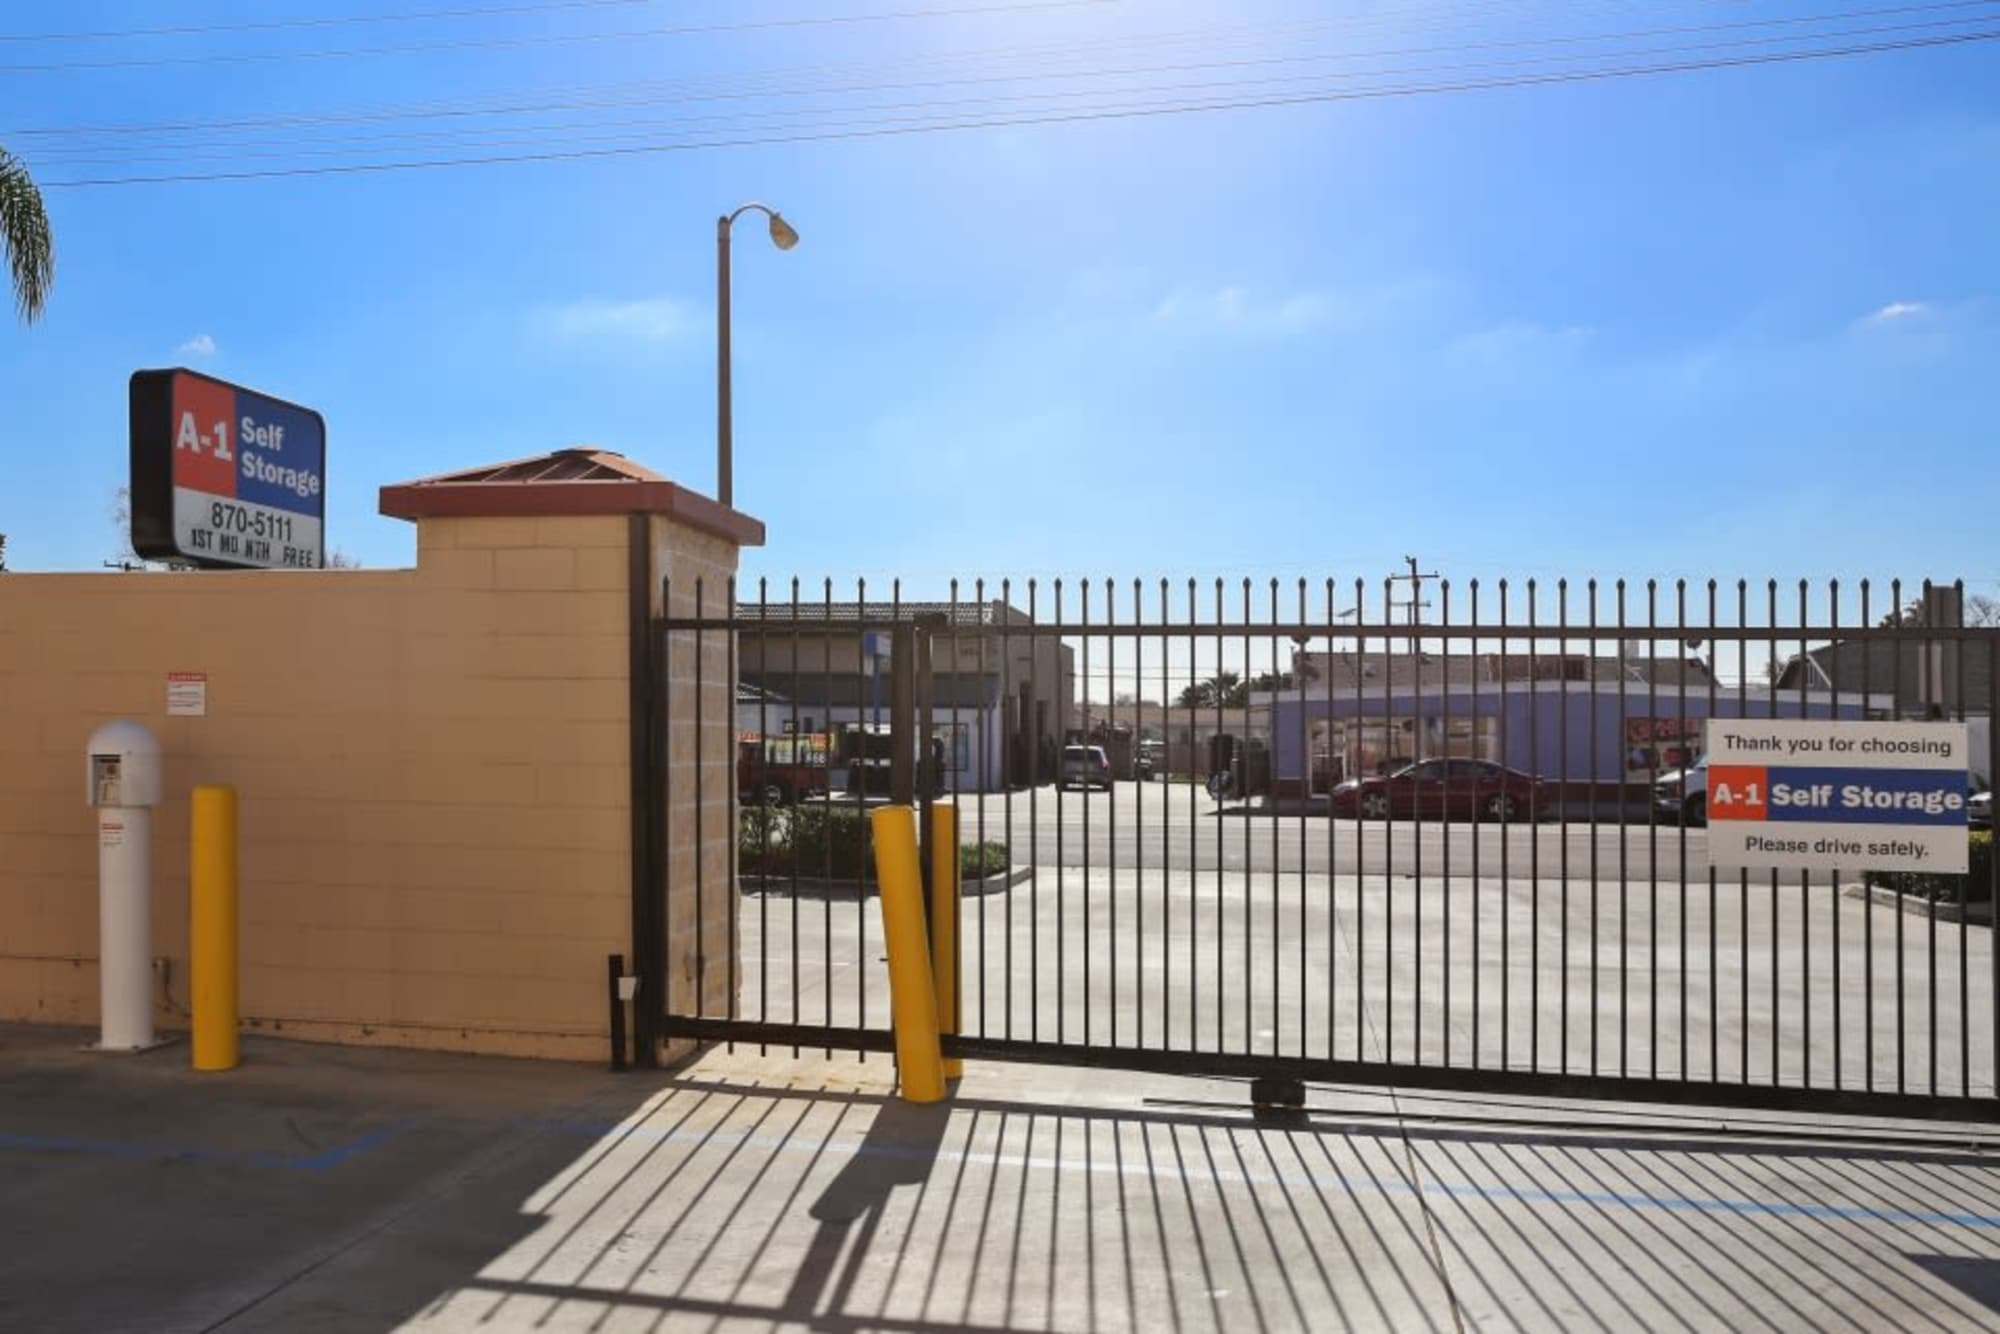 The secure code-access gated entrance at A-1 Self Storage in Fullerton, California